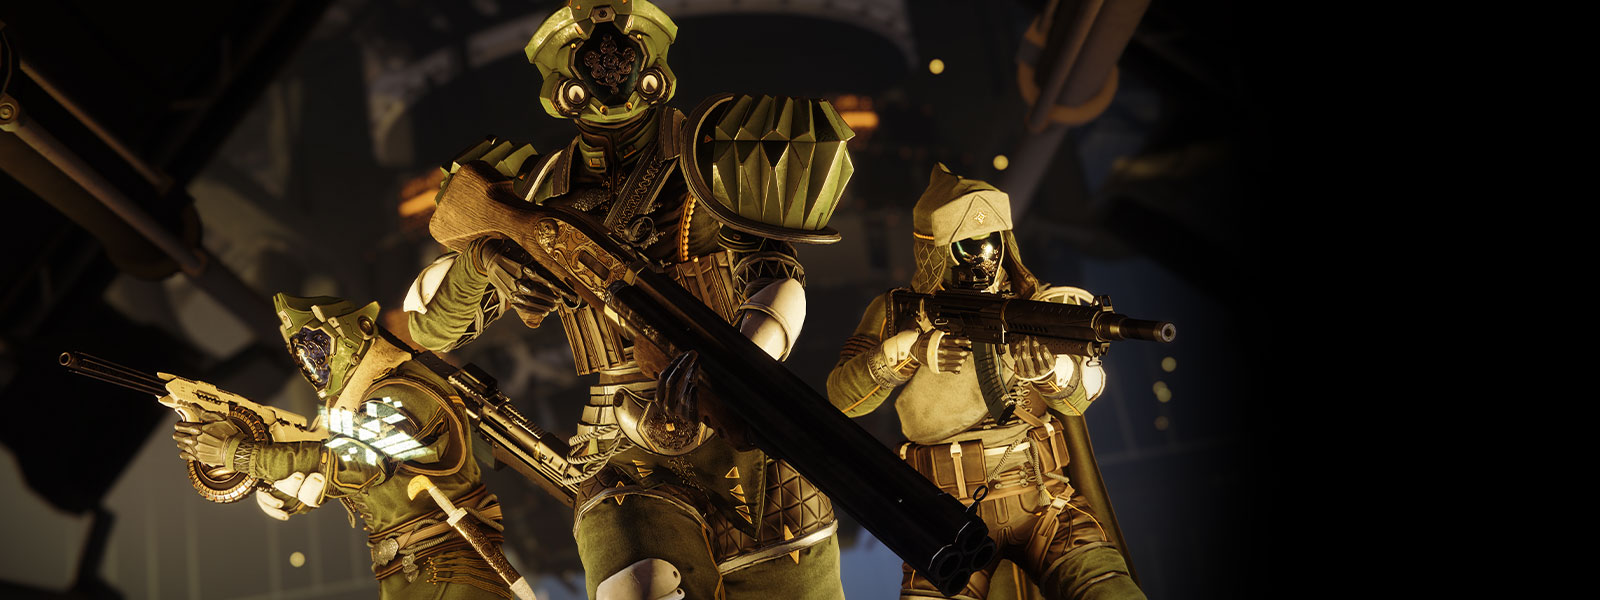 Golden-armored players walk with fancy guns.